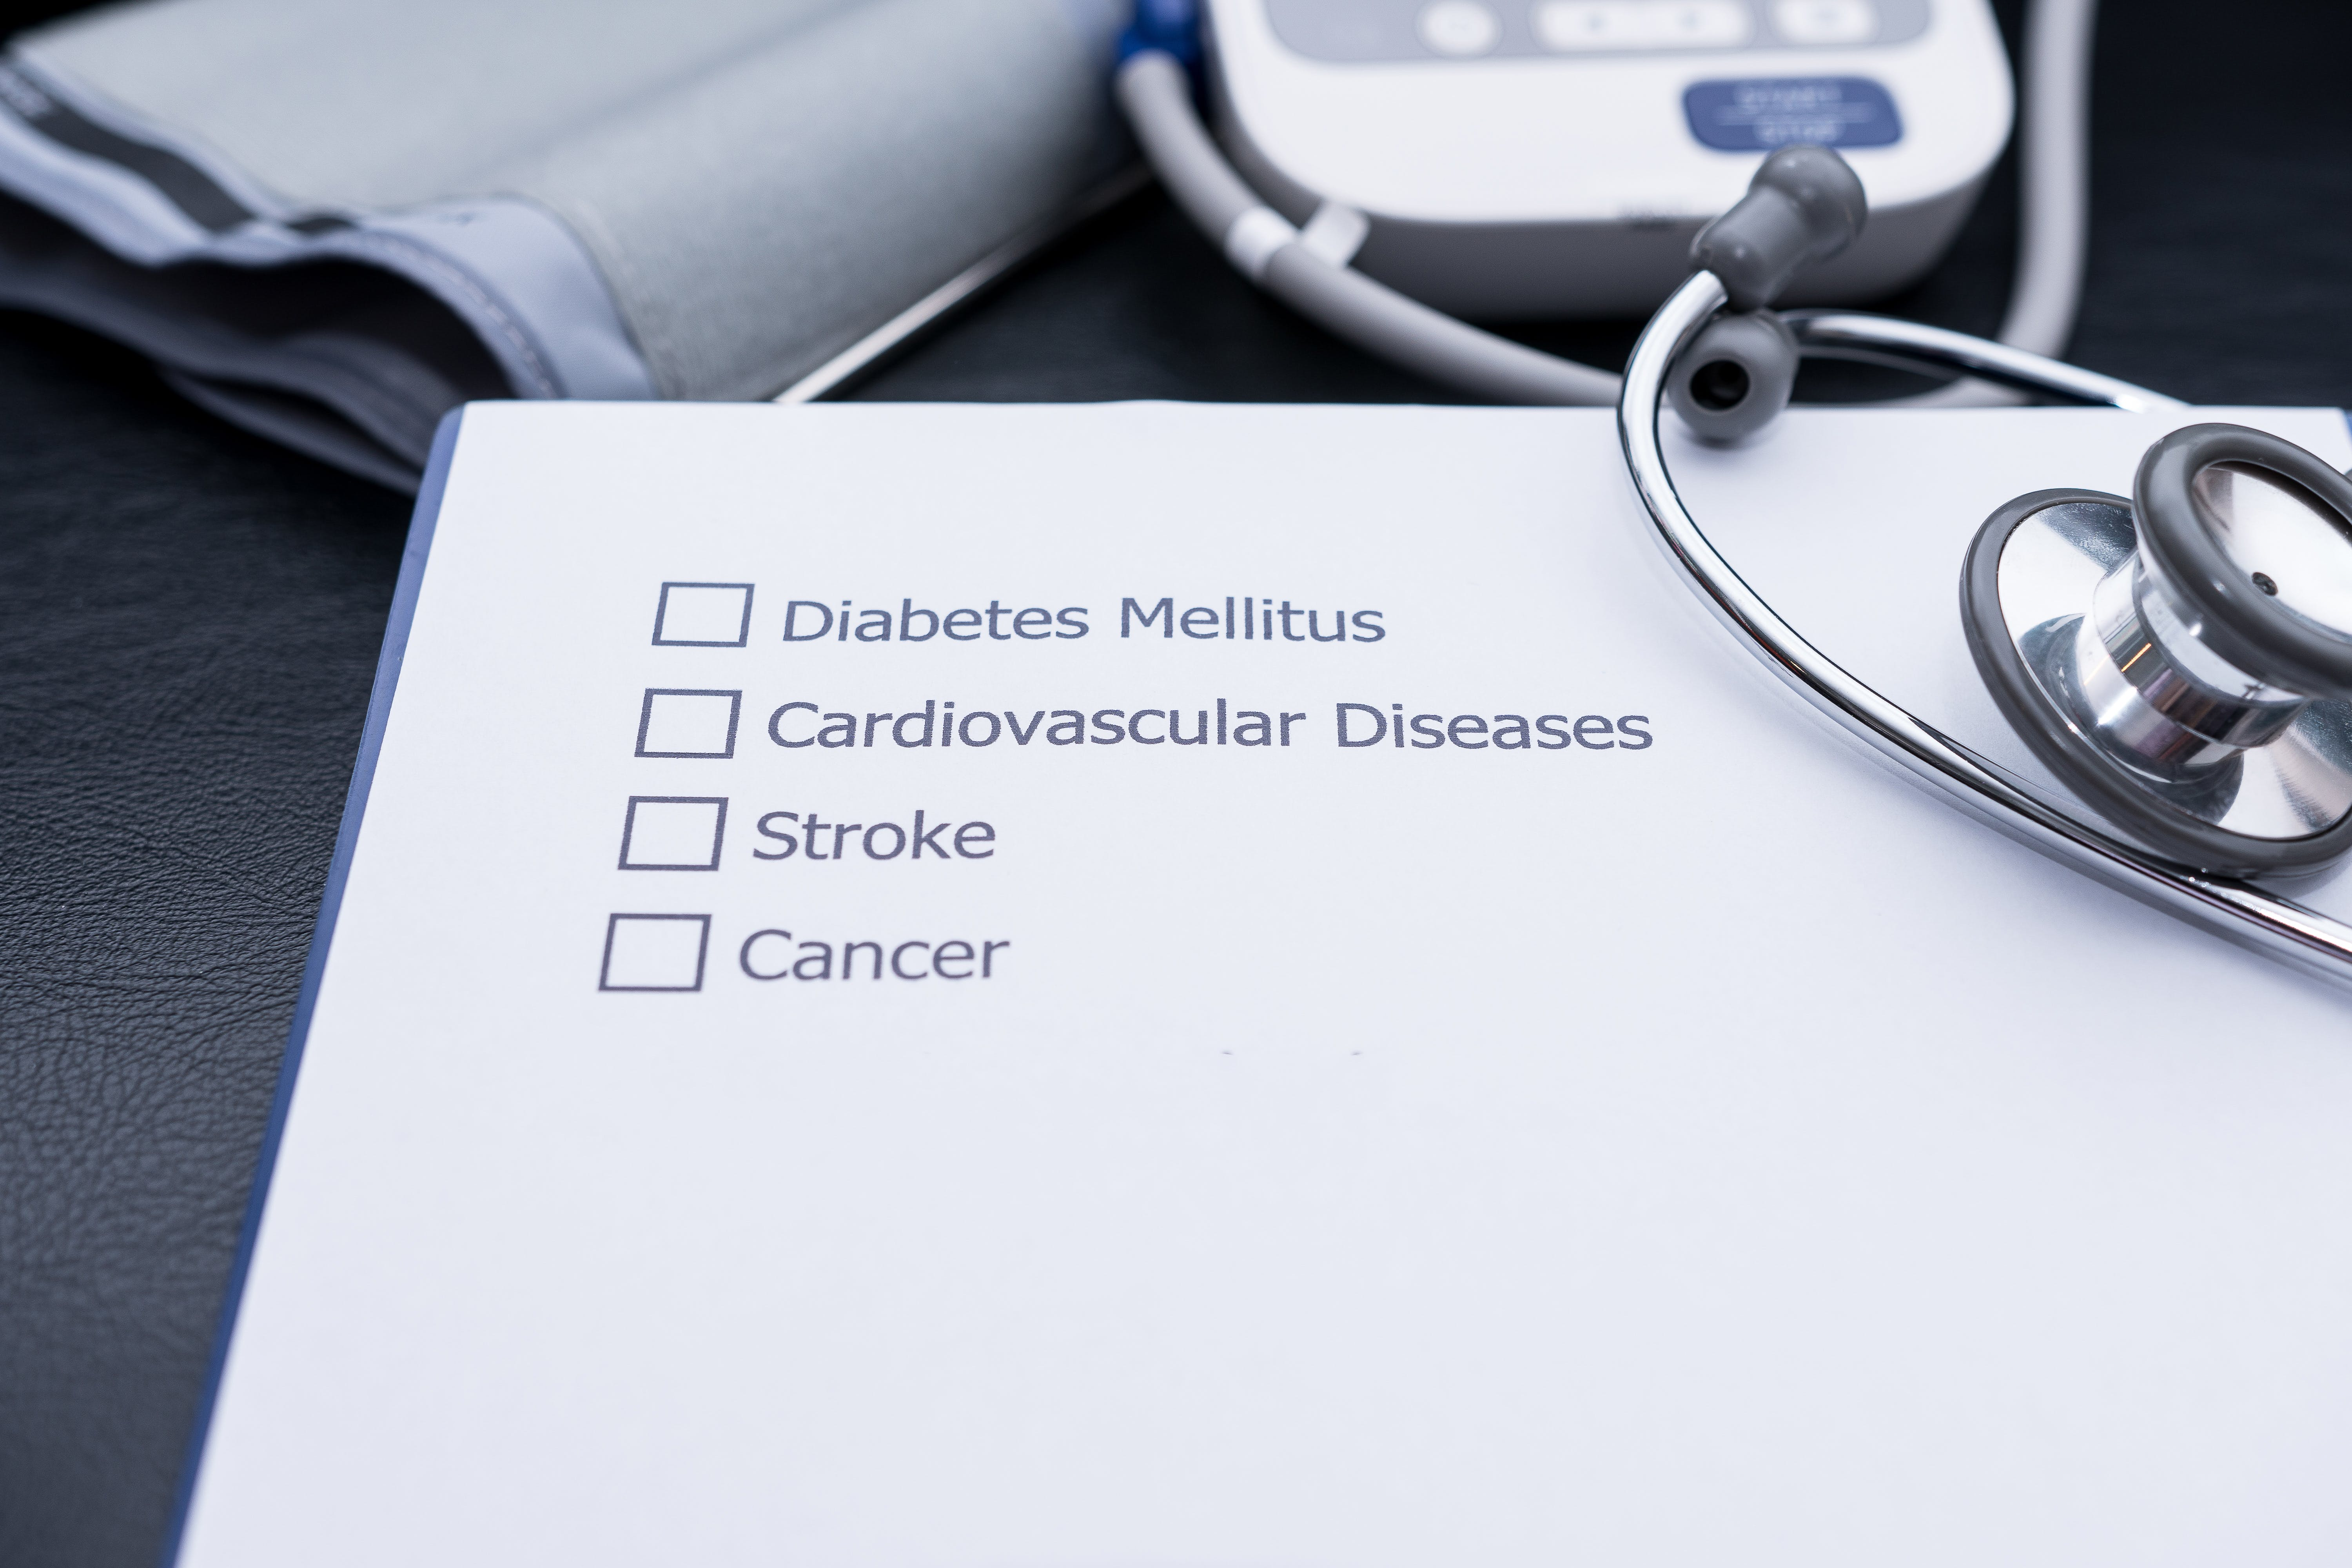 More bad news for people with diabetes